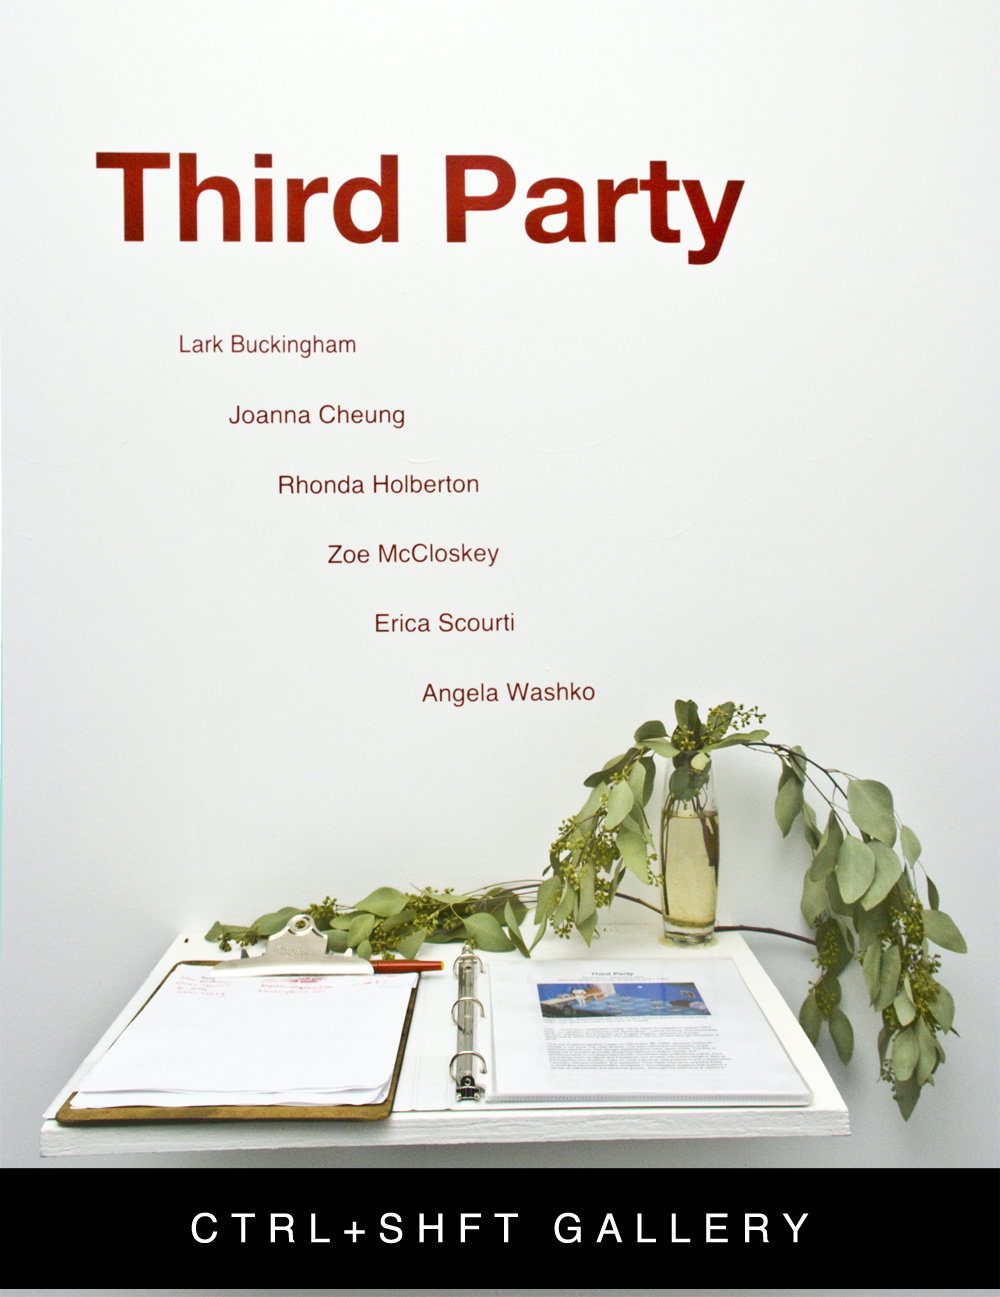 Third Party Title Image 2.jpg